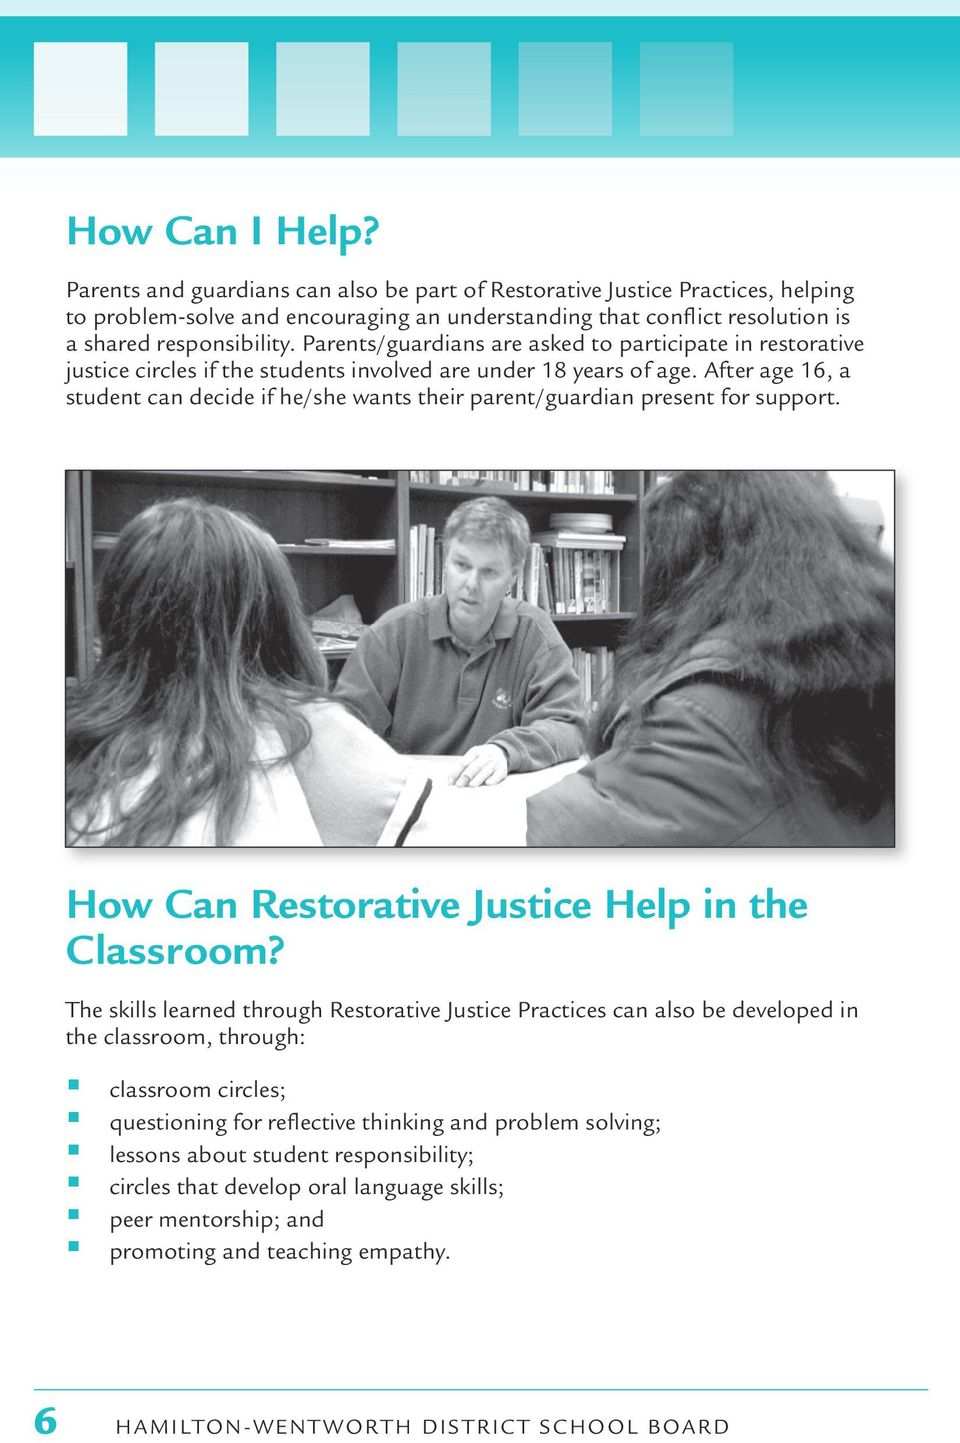 After age 16, a student can decide if he/she wants their parent/guardian present for support. How Can Restorative Justice Help in the Classroom?